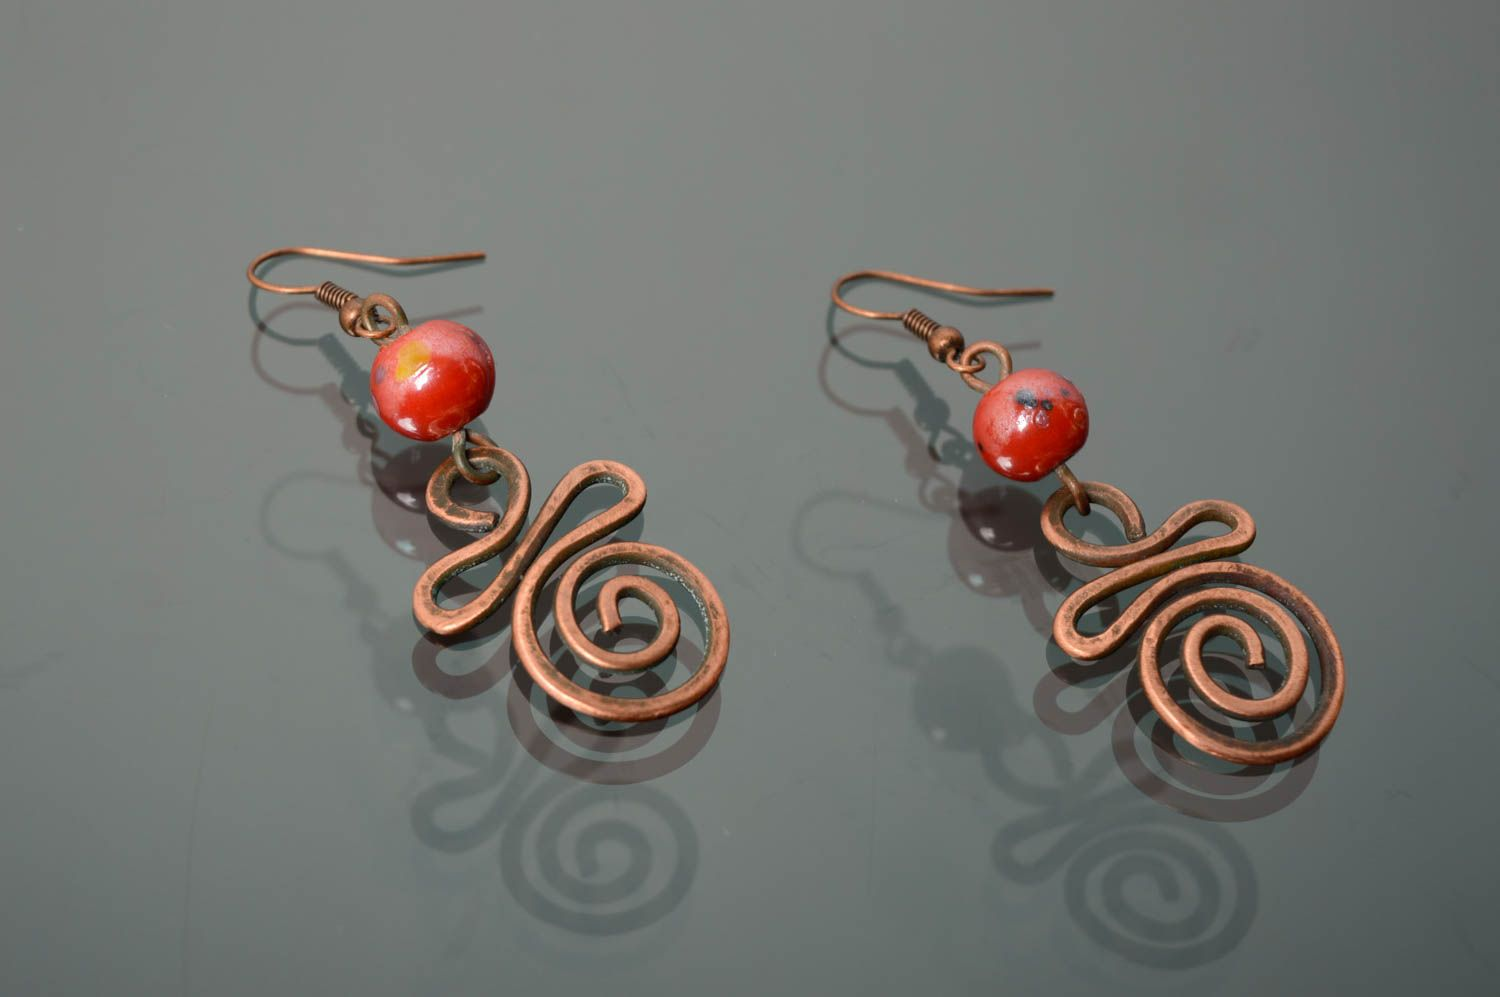 Handmade copper earrings with Indian beads photo 1